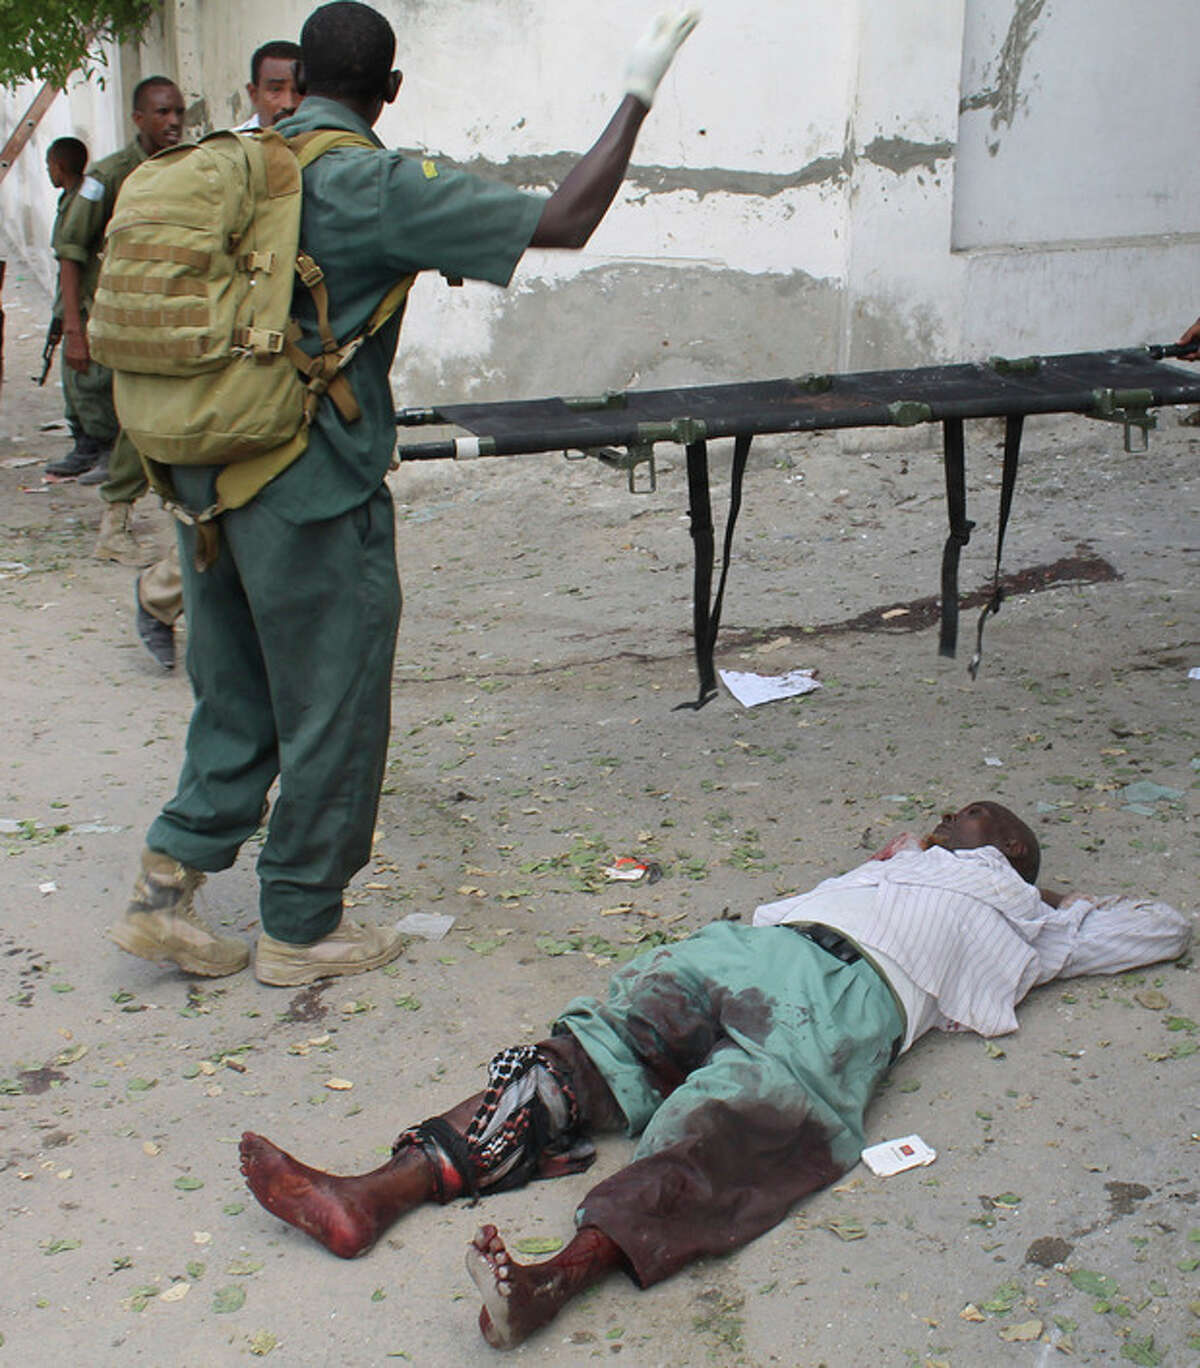 A Somali soldier stands over a wounded civilian lying at the entrance of Mogadishu?'s court complex after being injured during a siege by militants in Mogadishu, Somalia, Sunday, April 14, 2013. Militants launched a serious and sustained assault on Mogadishu's main court complex Sunday, detonating at least two blasts, taking an unknown number of hostages and exchanging extended volleys of gunfire with government security forces, witnesses said.(AP Photo/Farah Abdi Warsameh)